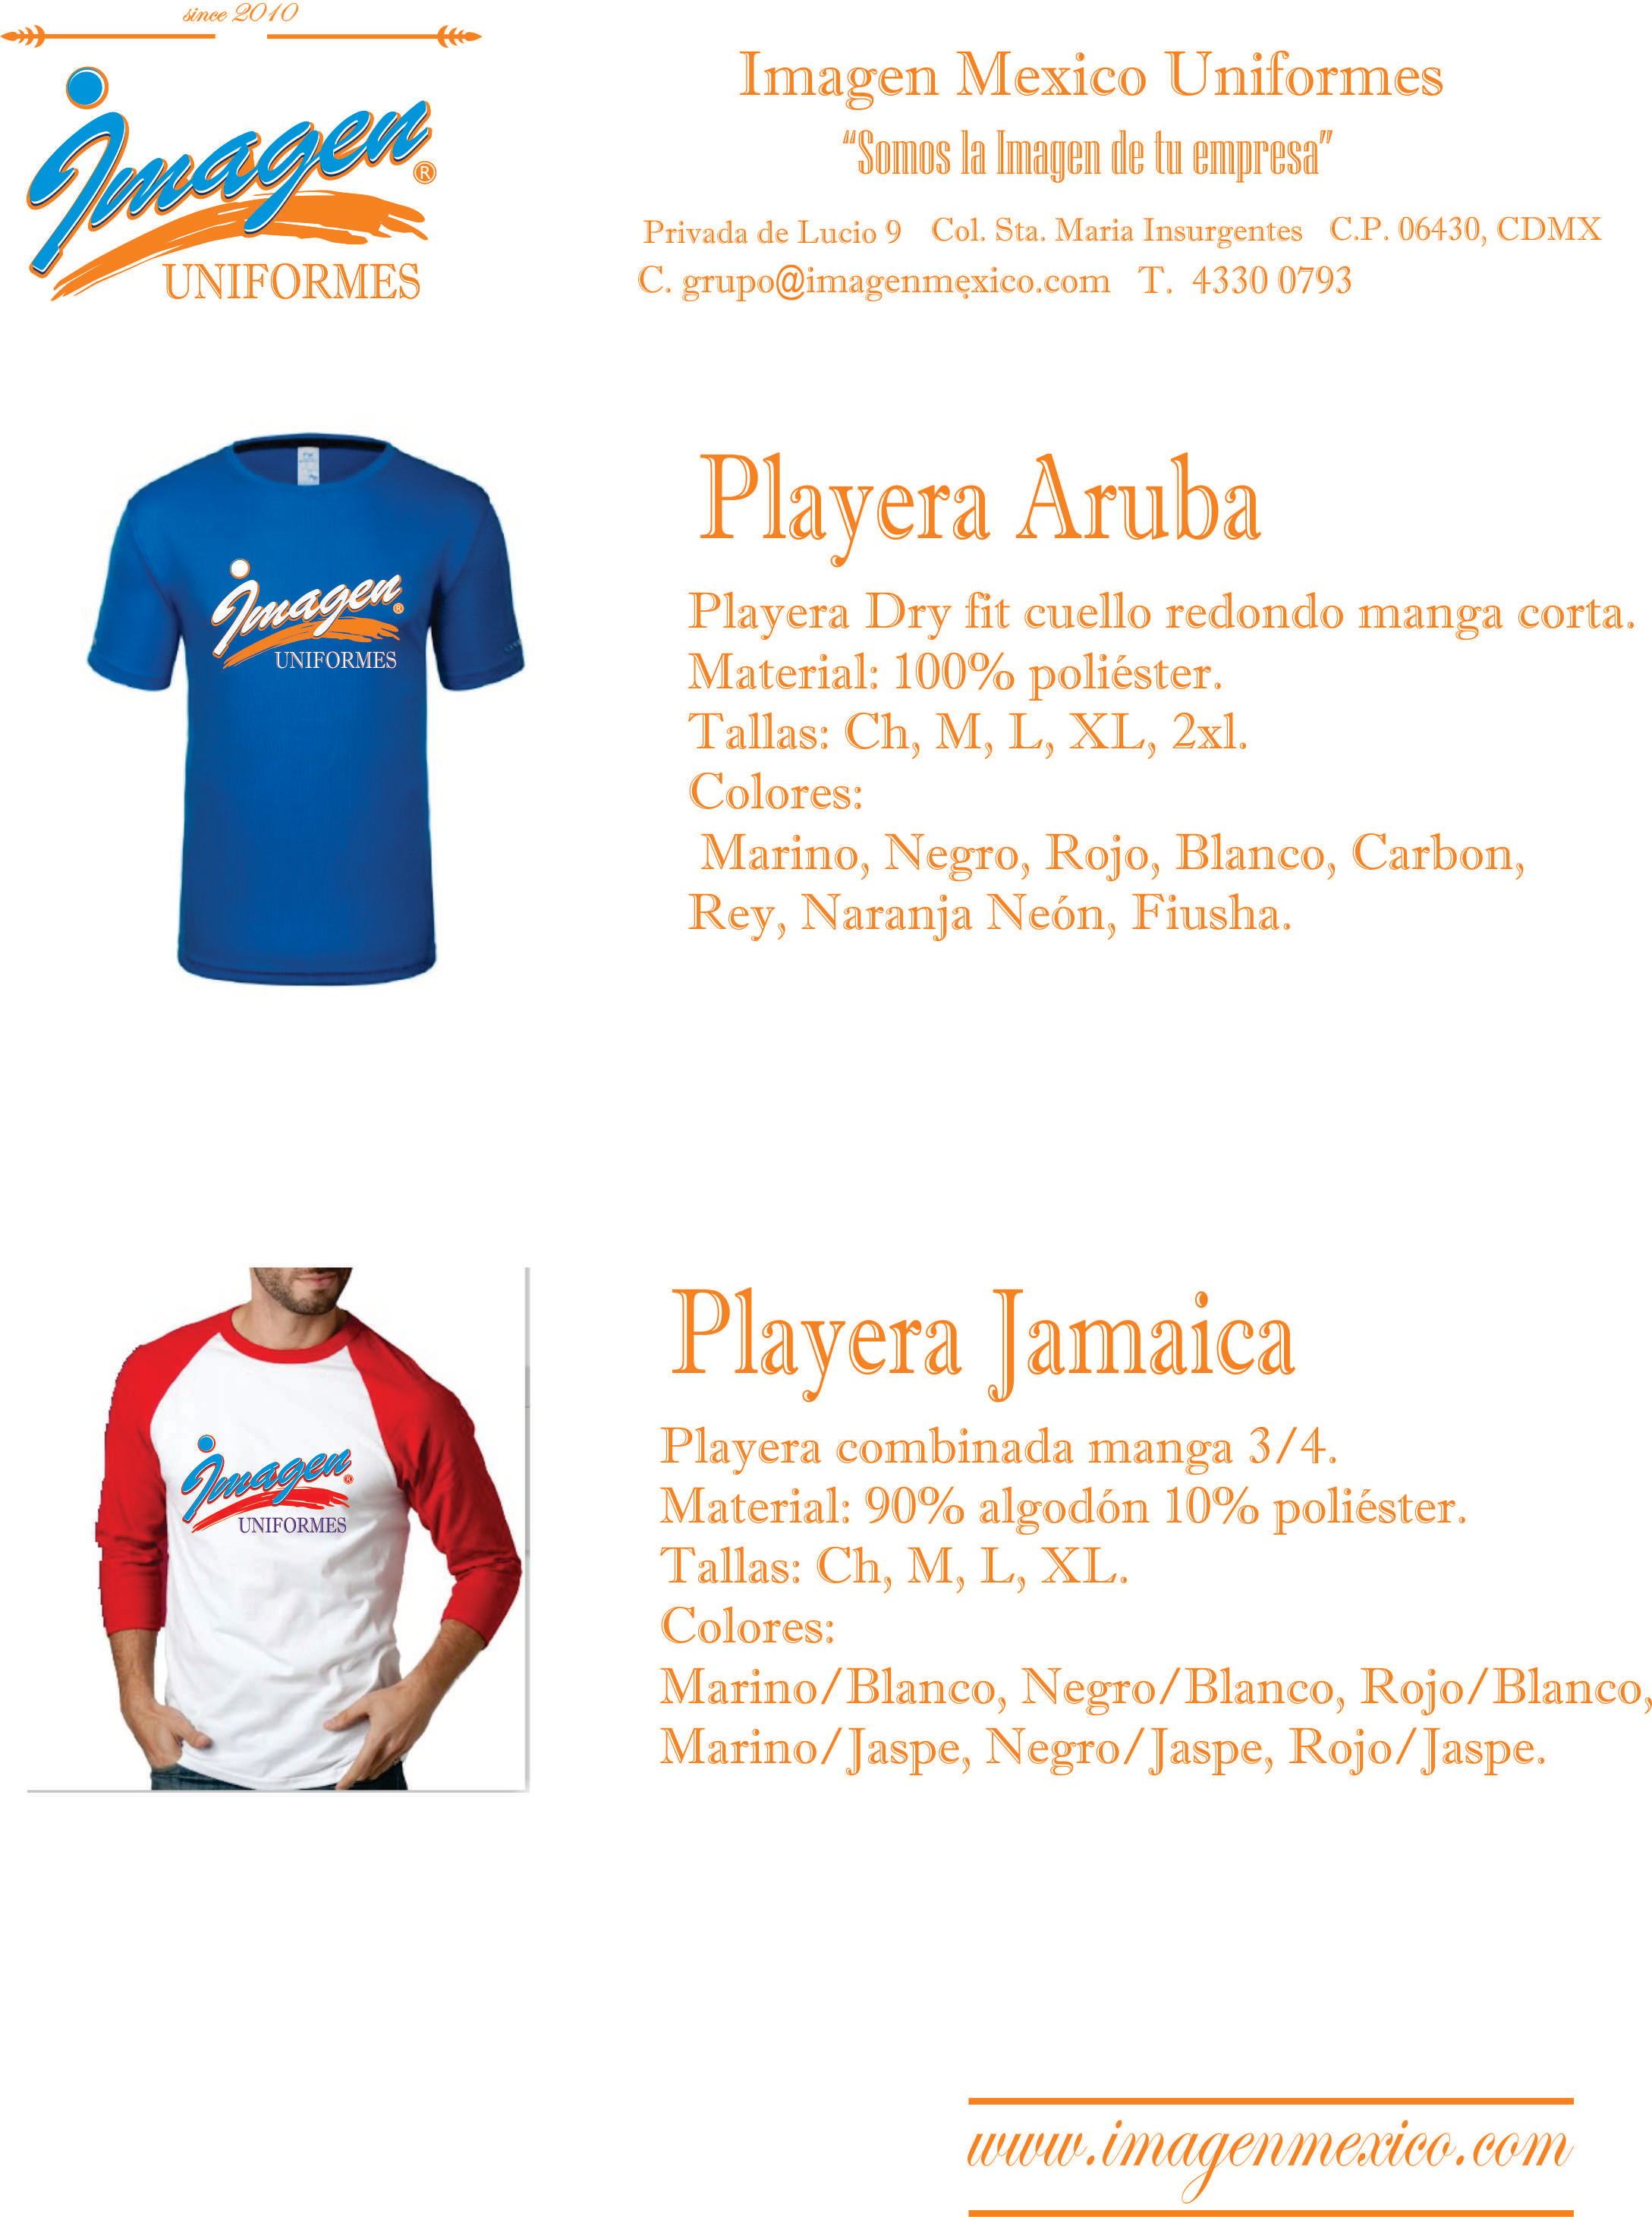 PLAYERAS CARIBE 2 DRY FIT